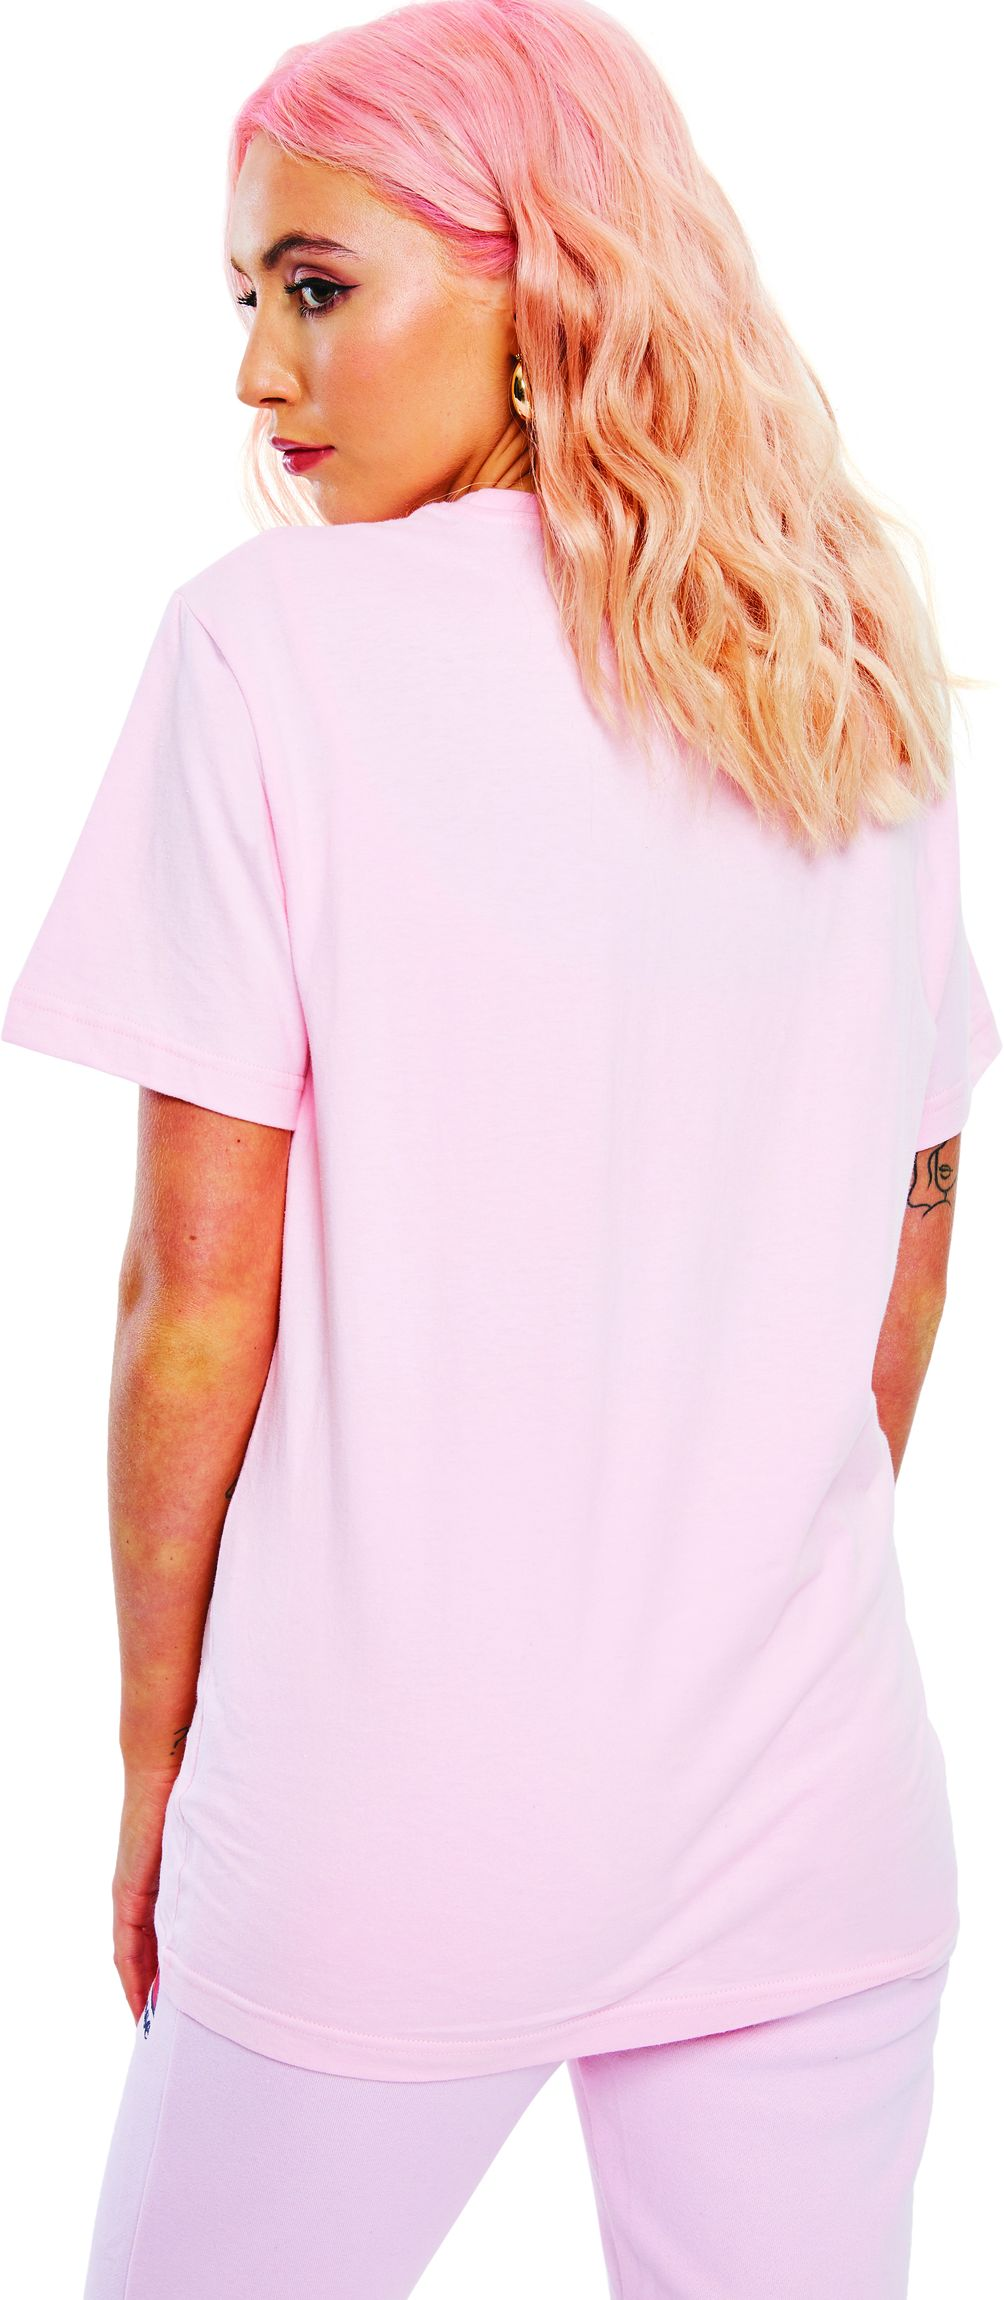 Ellesse-T-Shirts-amp-Tops-Women-039-s-Assorted-Fit-Styles thumbnail 11